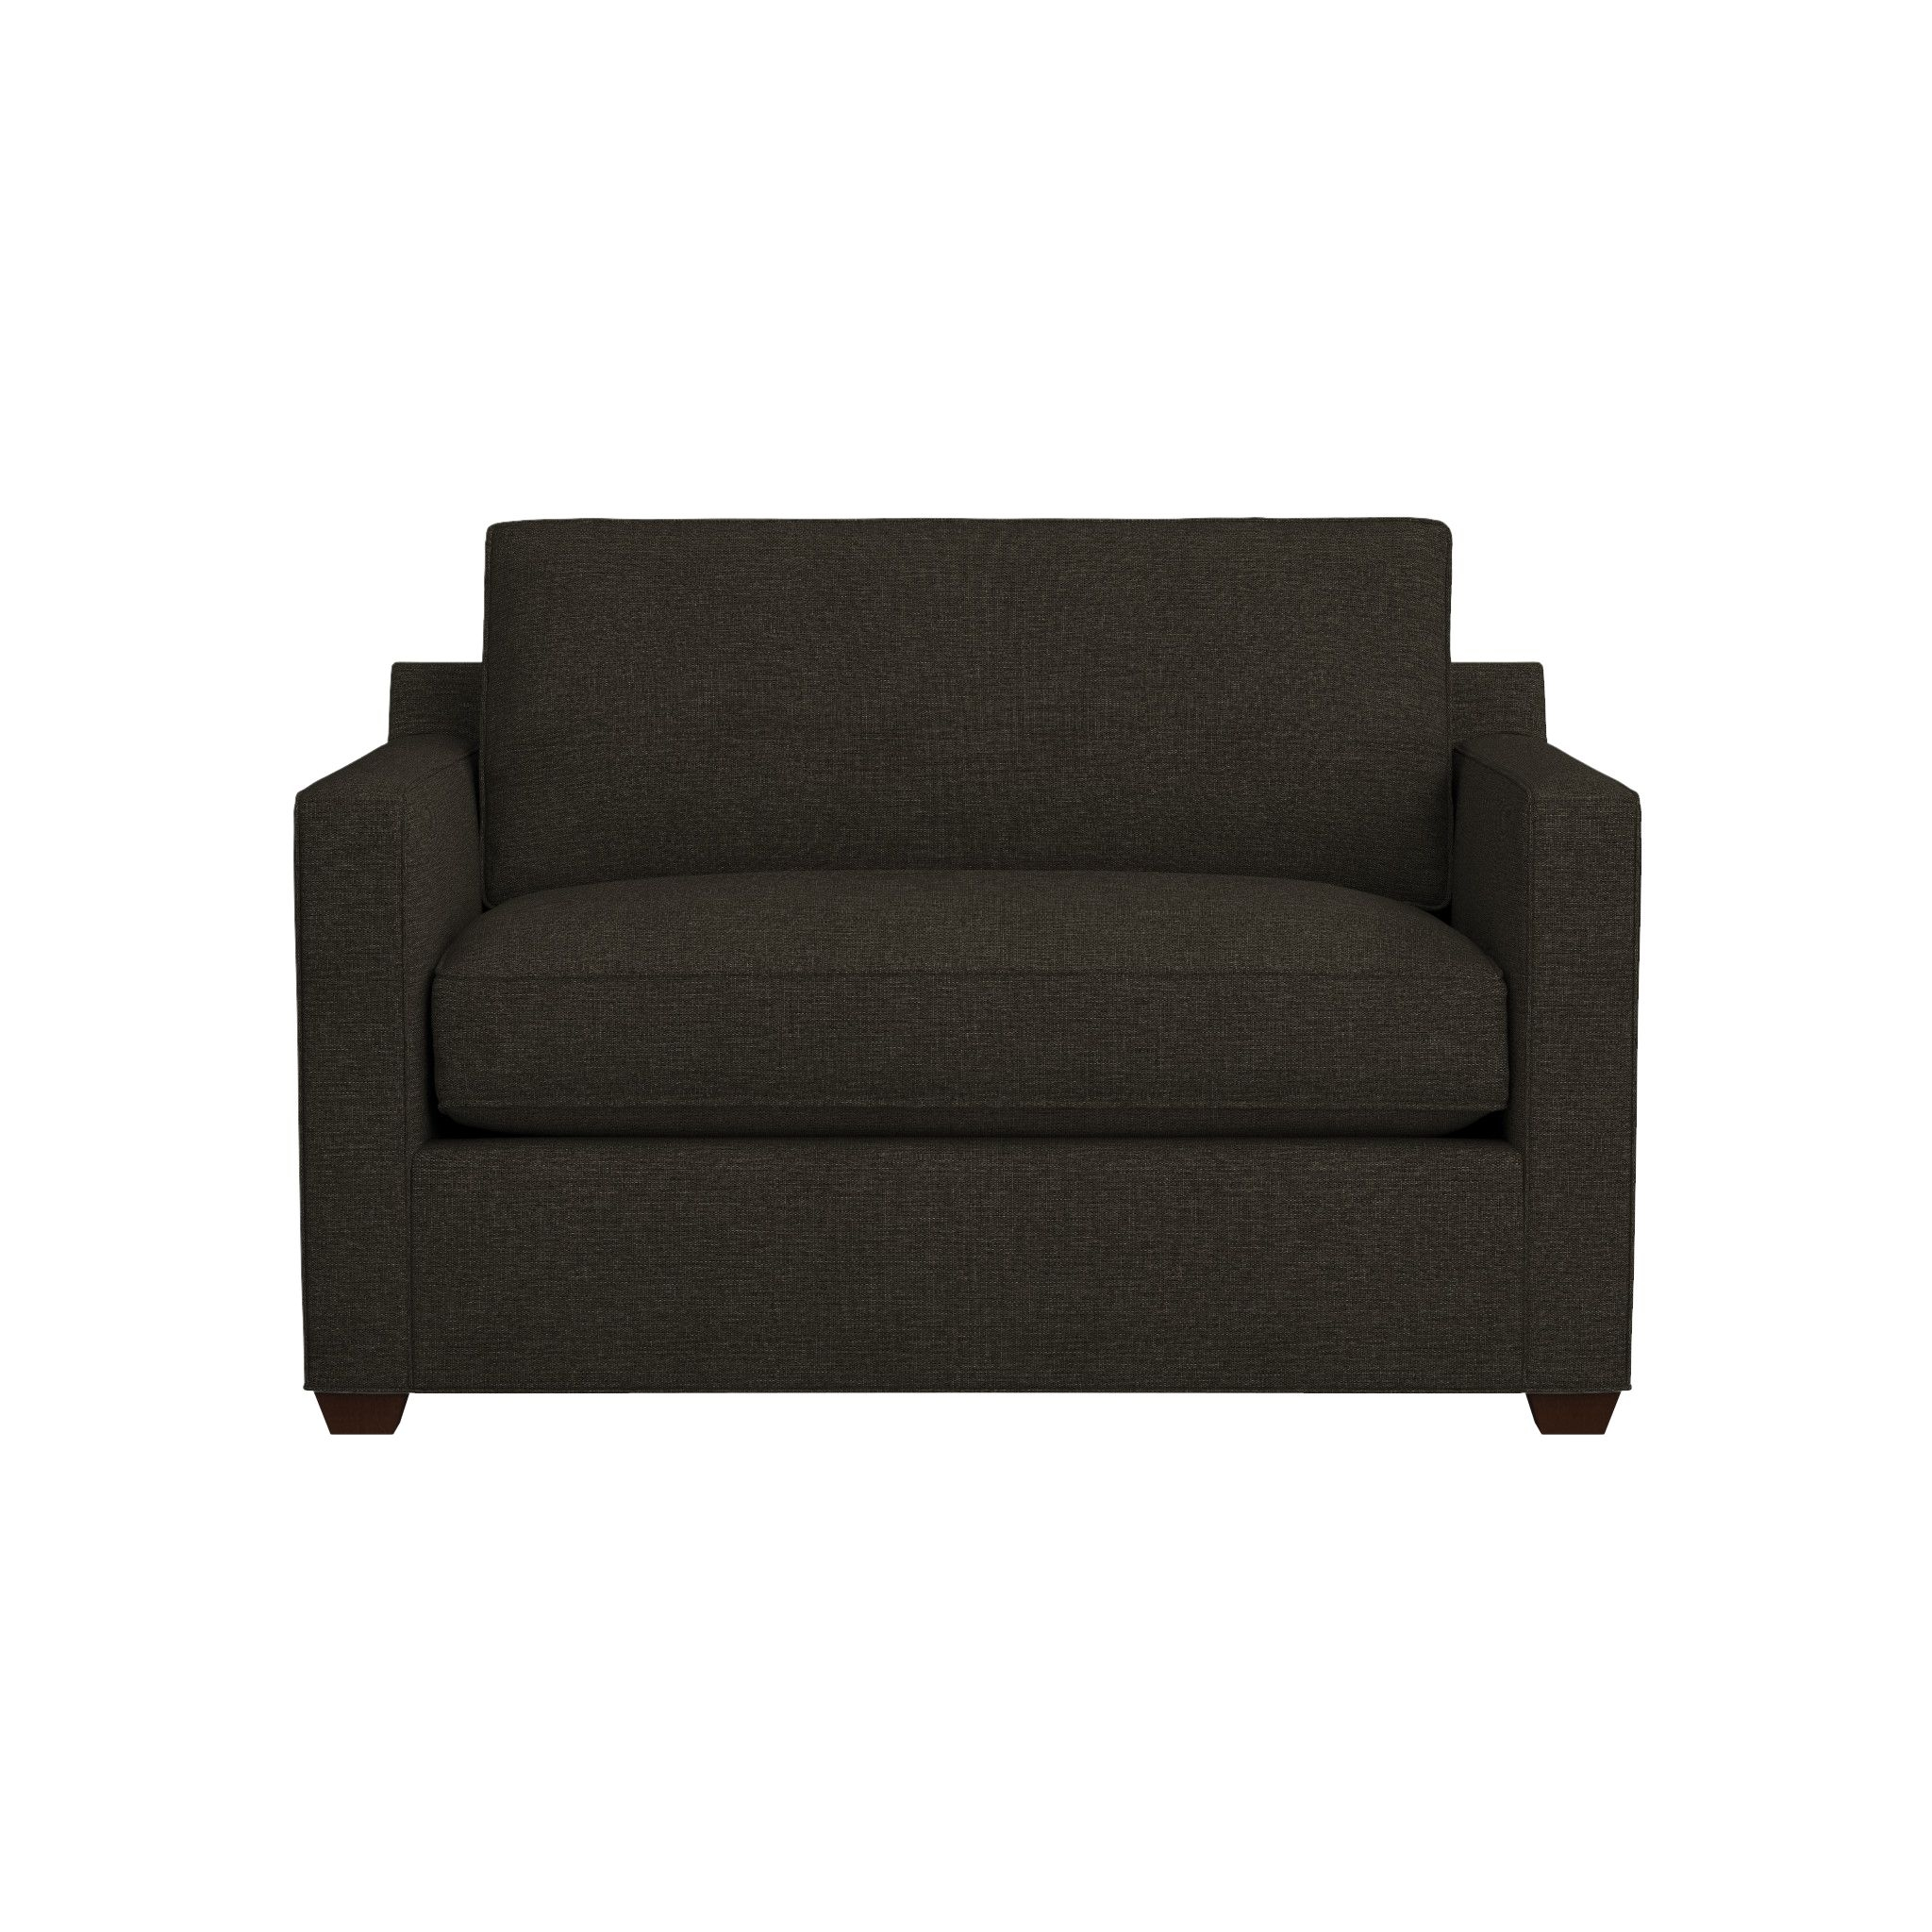 Davis Twin Sleeper Sofa With Air Mattress | Crate And Barrel Throughout Sleep Number Sofa Beds (View 6 of 15)